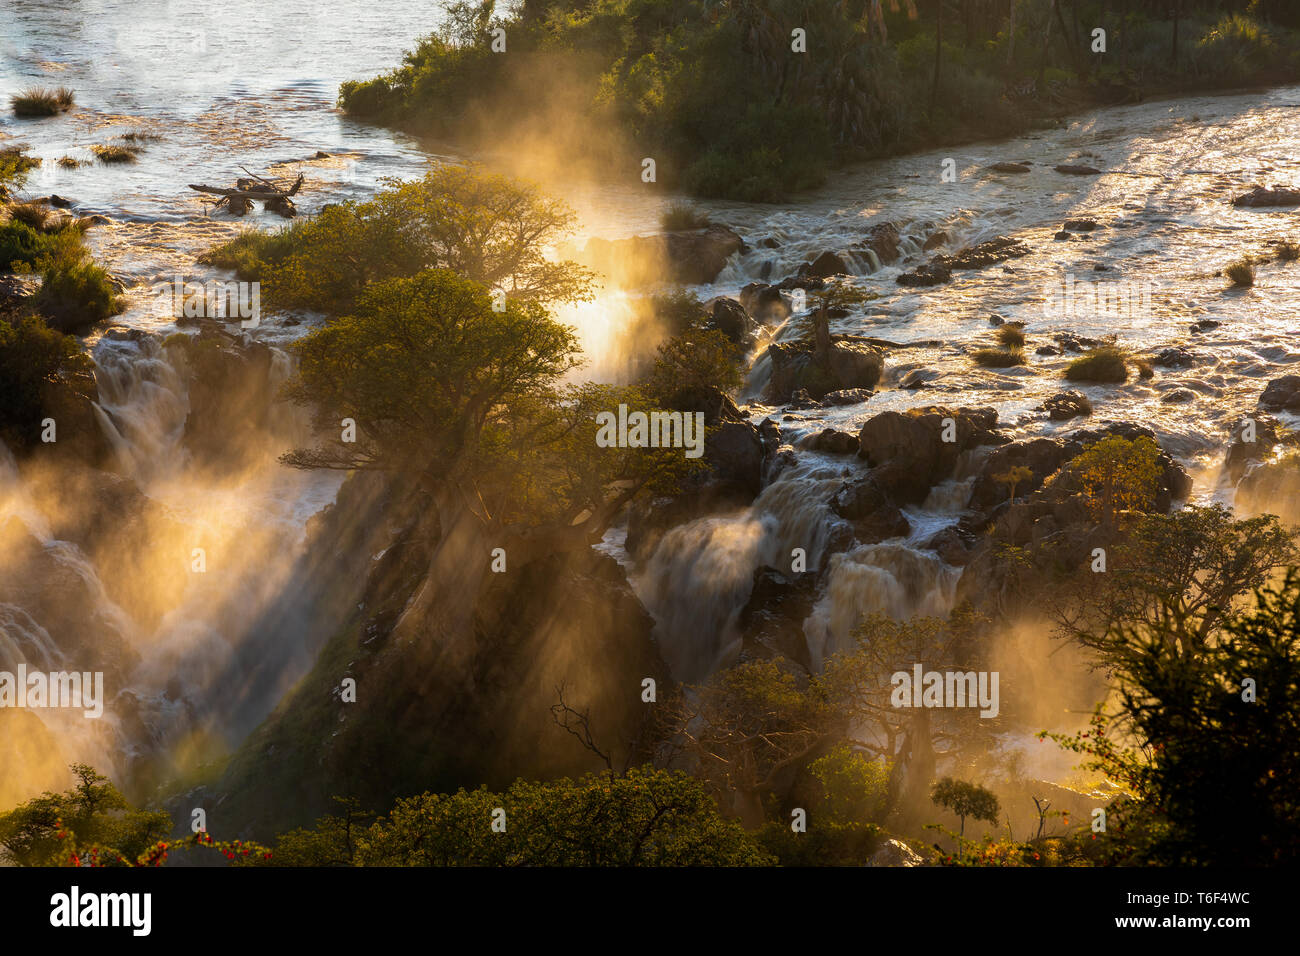 Epupa Falls on the Kunene River in Namibia - Stock Image